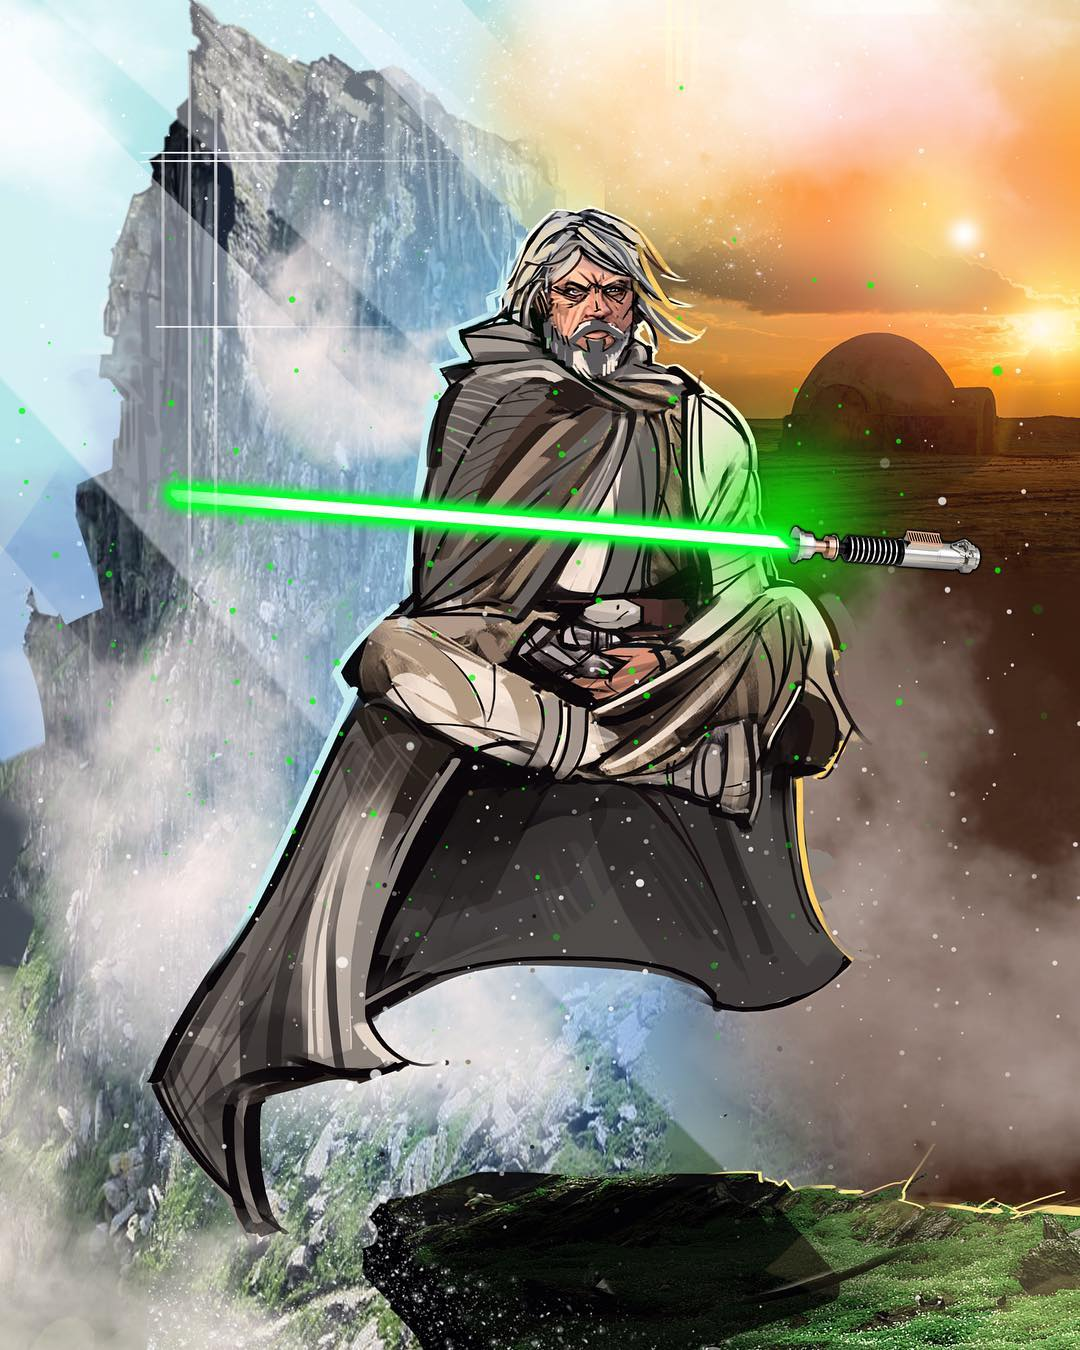 Luke-Skywalker-by-venamisart-Eli-Hyder-wallpaper-wp3408322